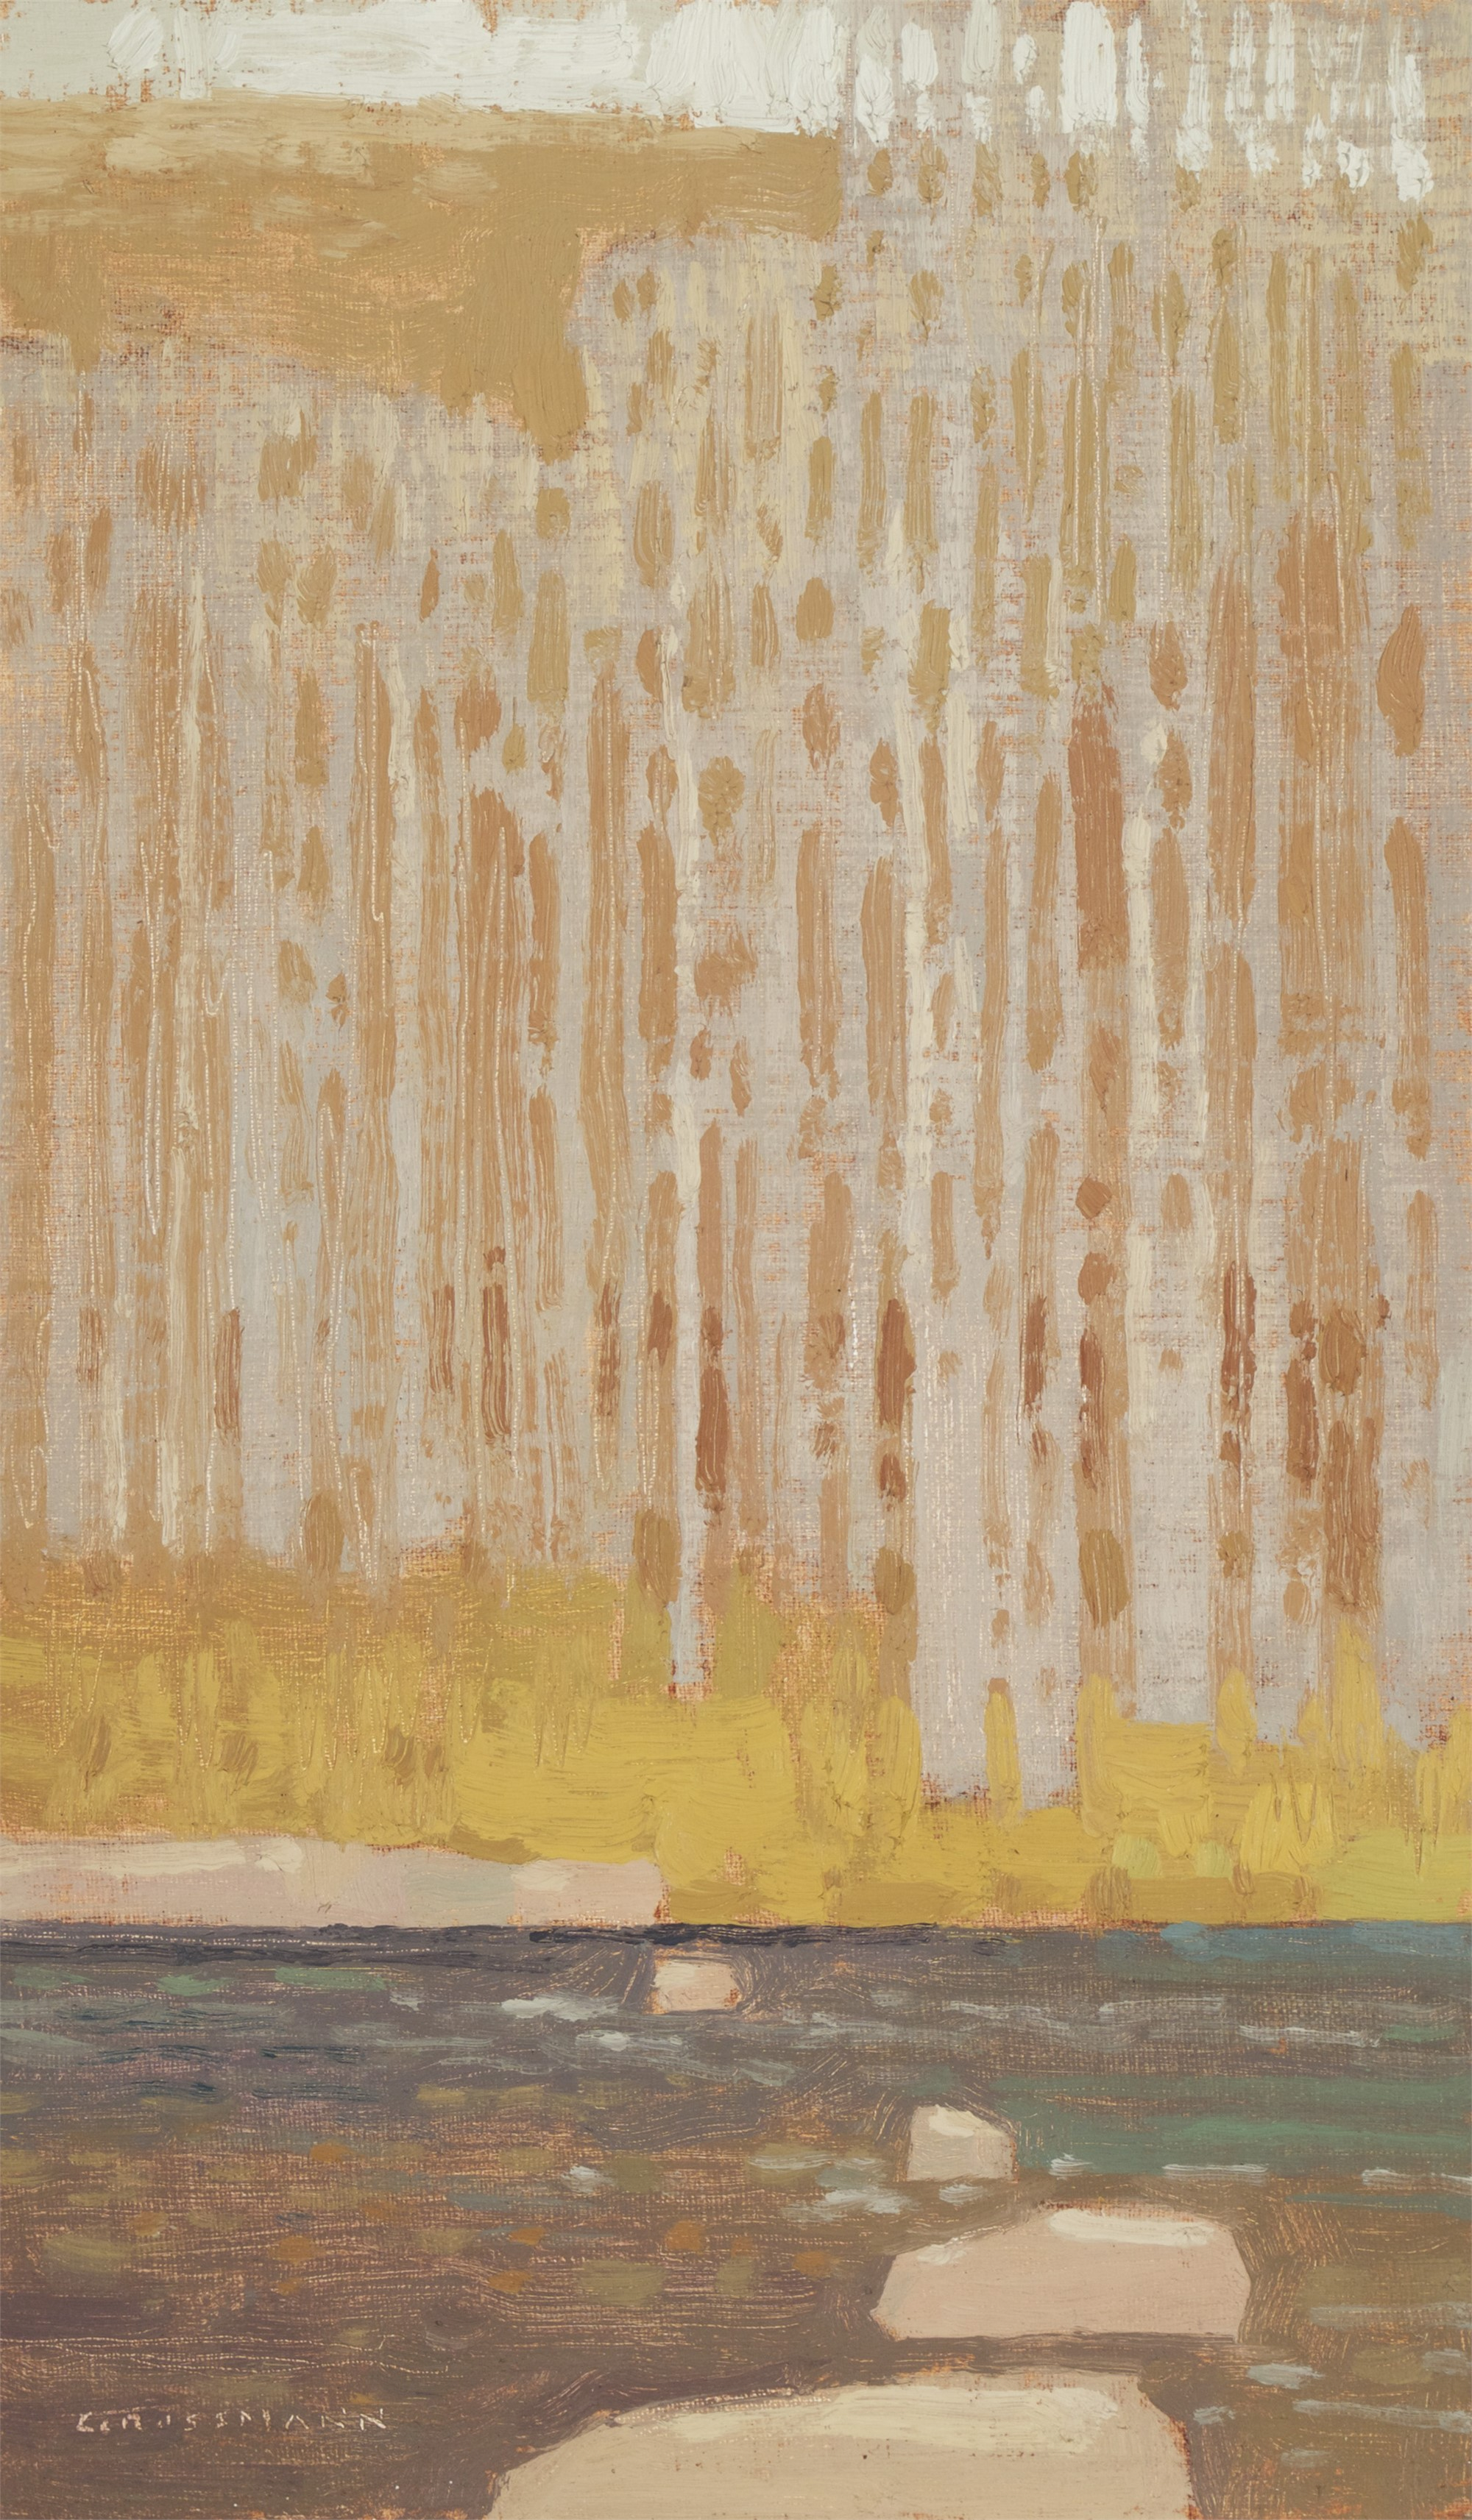 Across the Late Winter Creek by David Grossmann